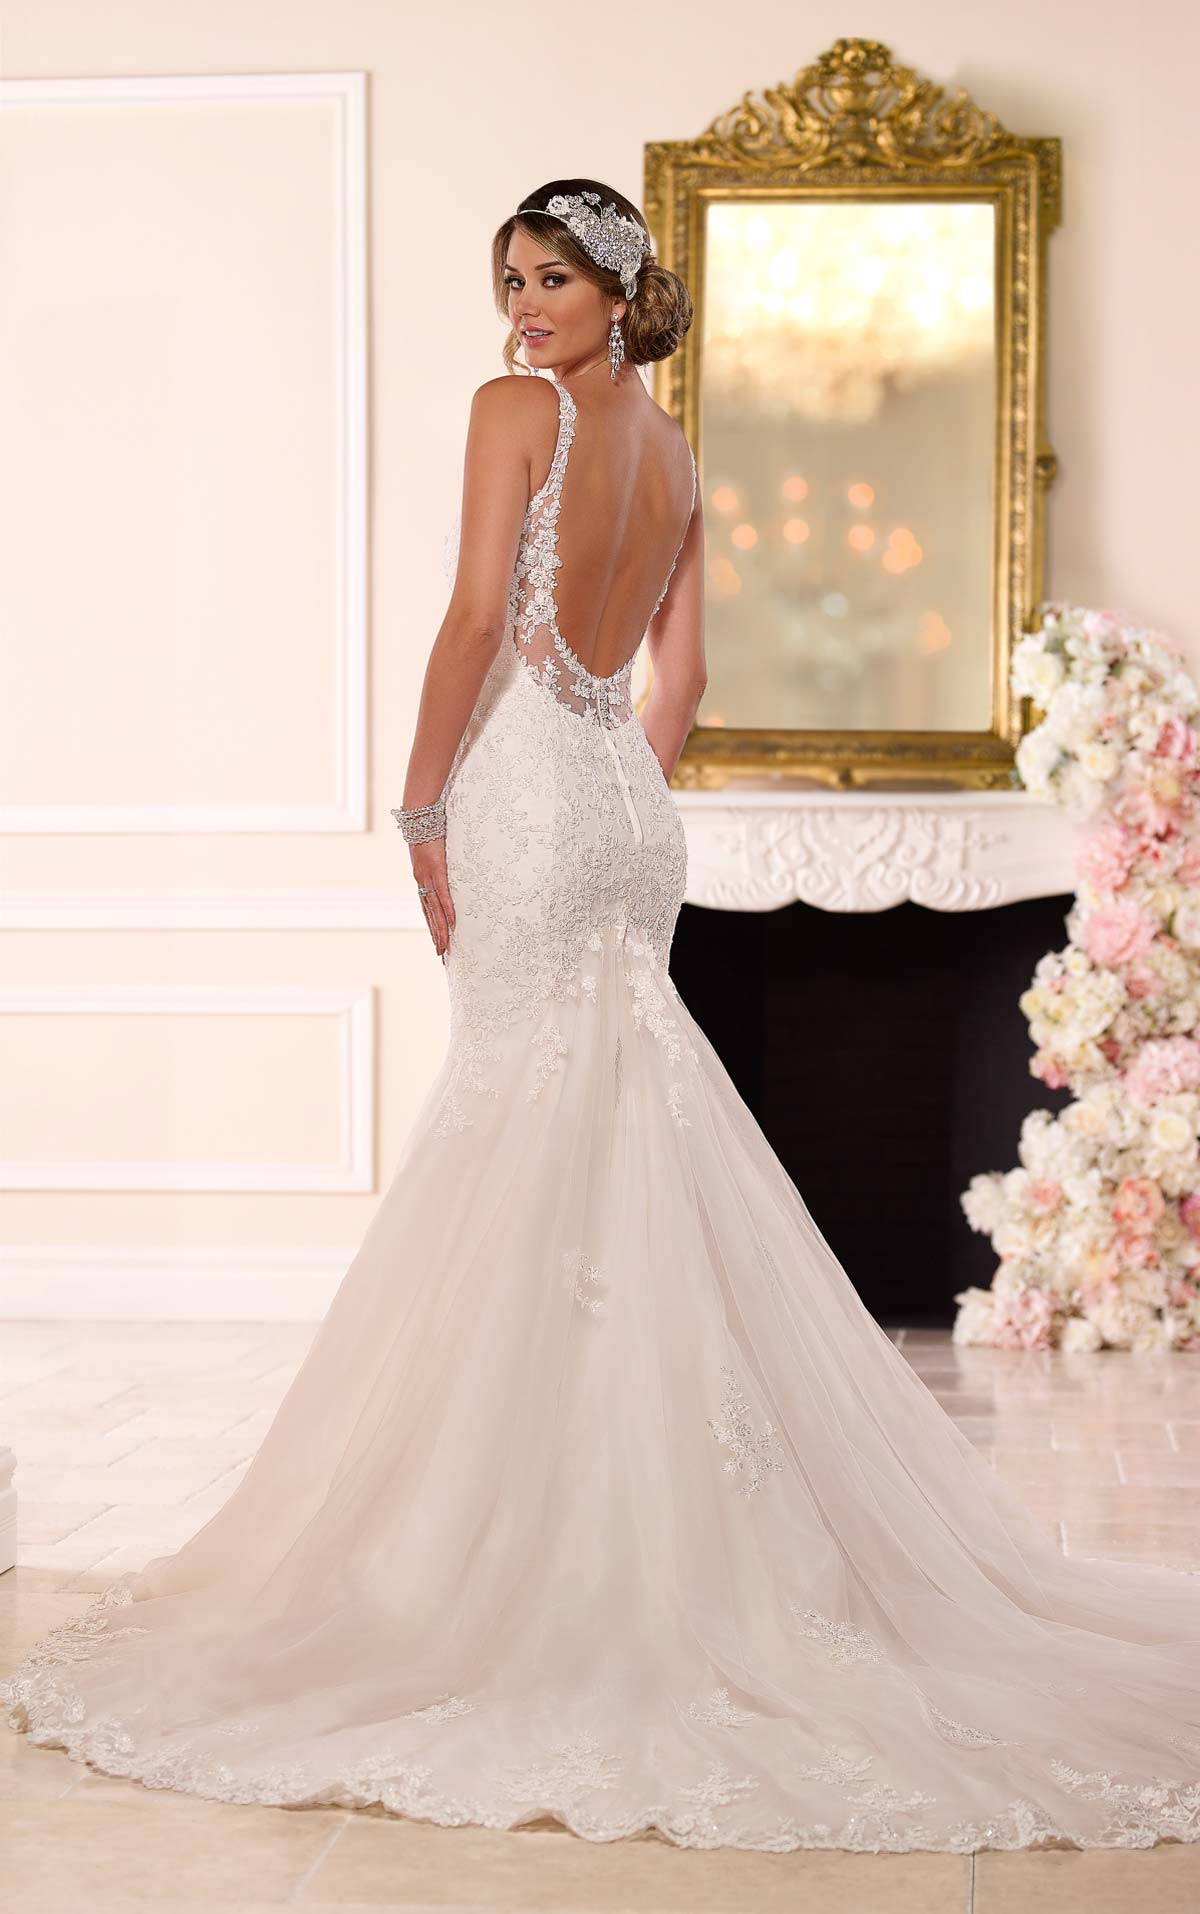 Sample Sale Sunday By Emma Louise Bridal,Dresses To Wear To A Formal Wedding